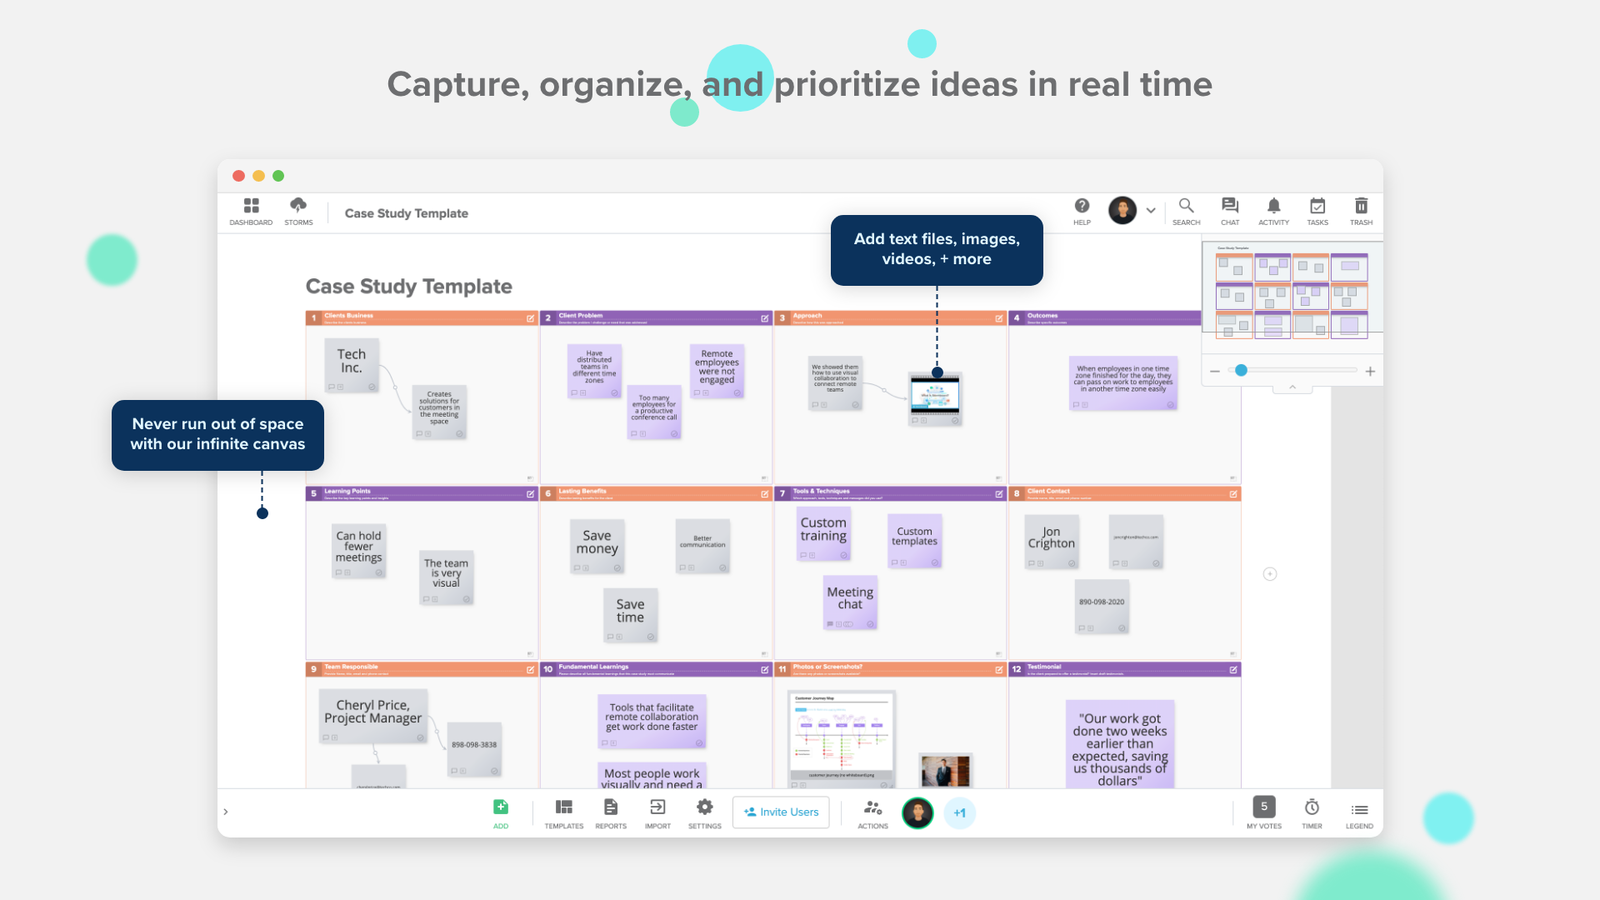 Capture, organize, and prioritize ideas in real time